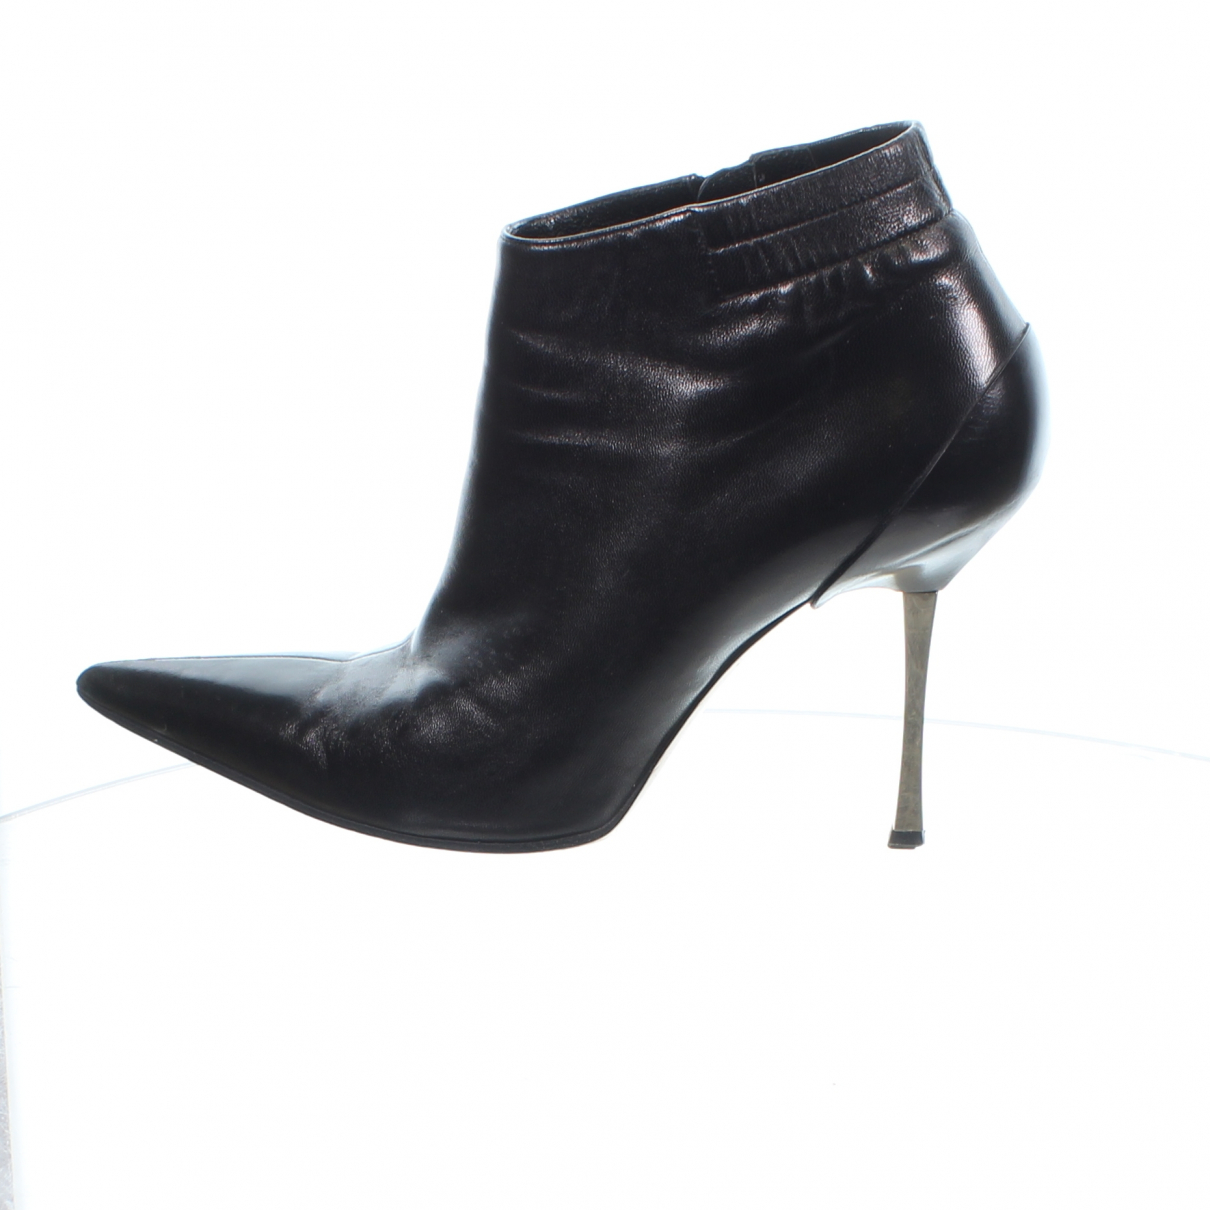 Gucci \N Black Leather Ankle boots for Women 37.5 EU